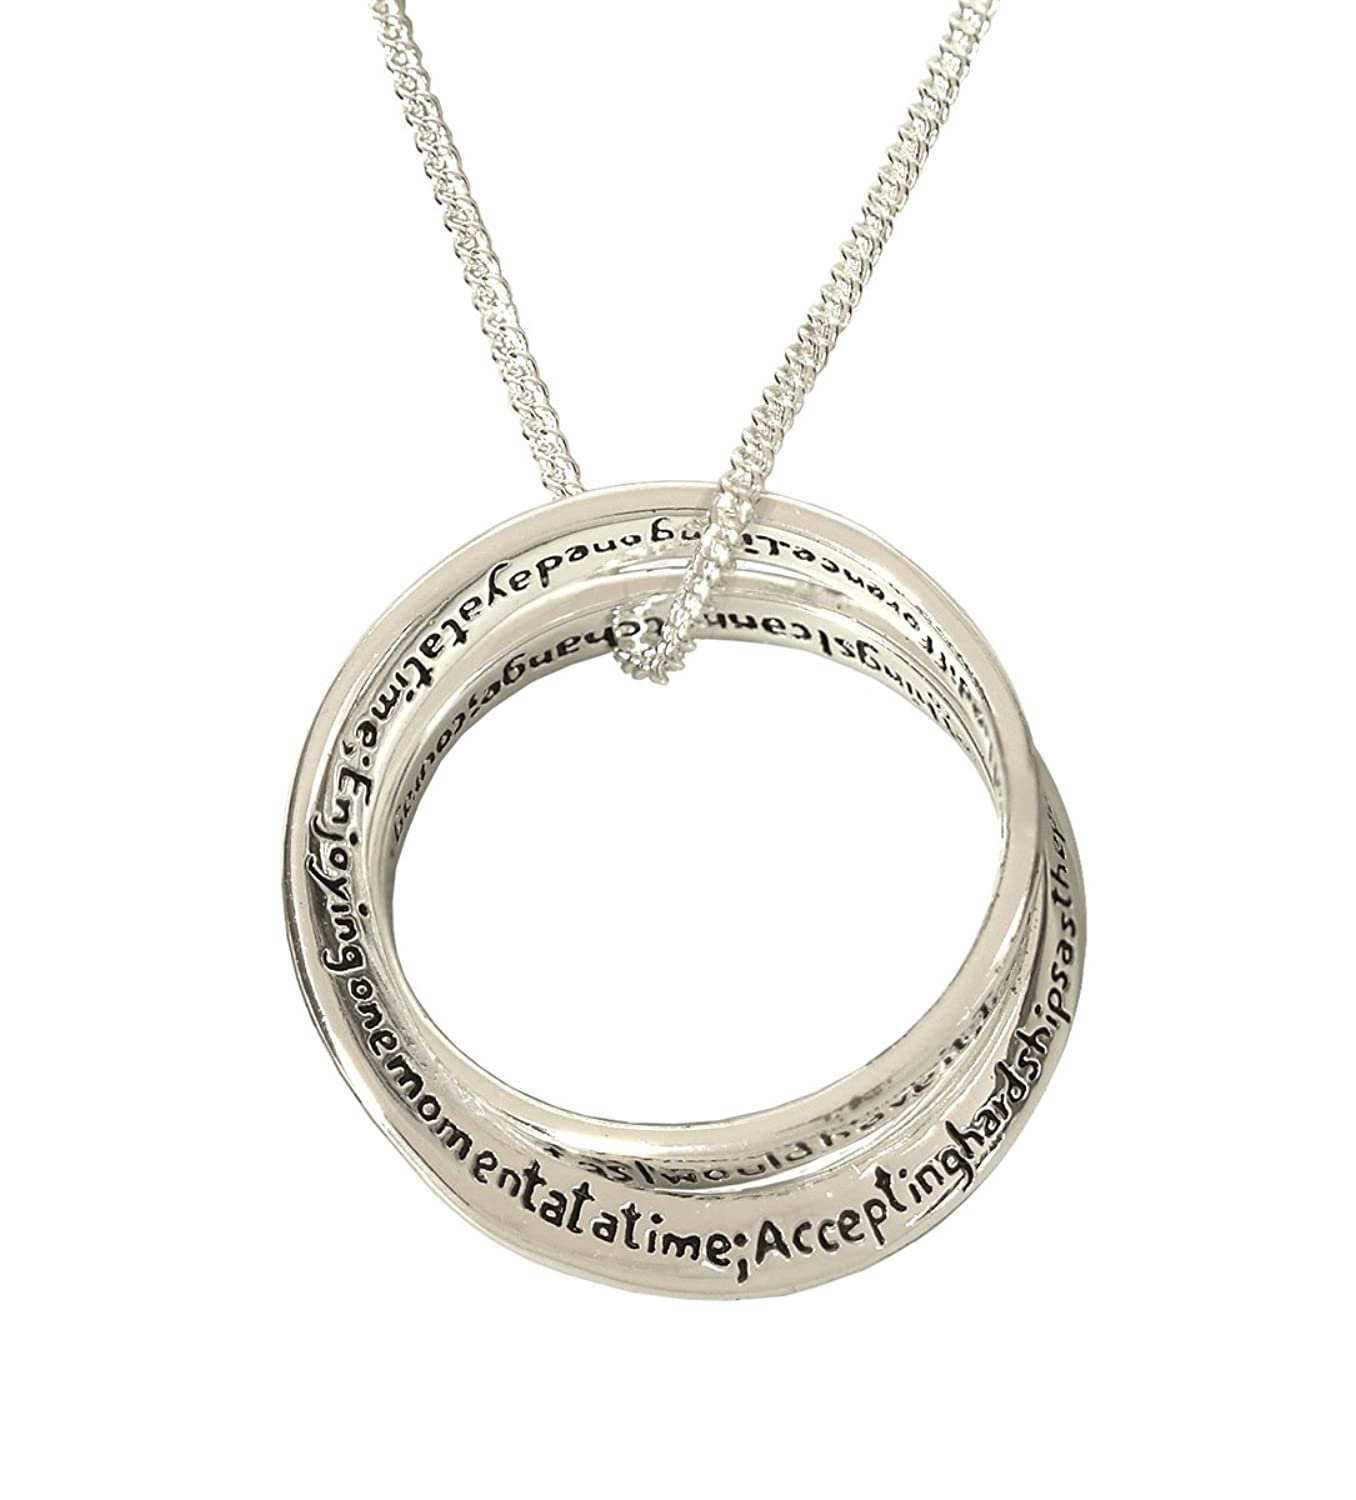 tag lord religion stainless steel oval an prayer on serenity pendant engraved necklace beautiful itm god